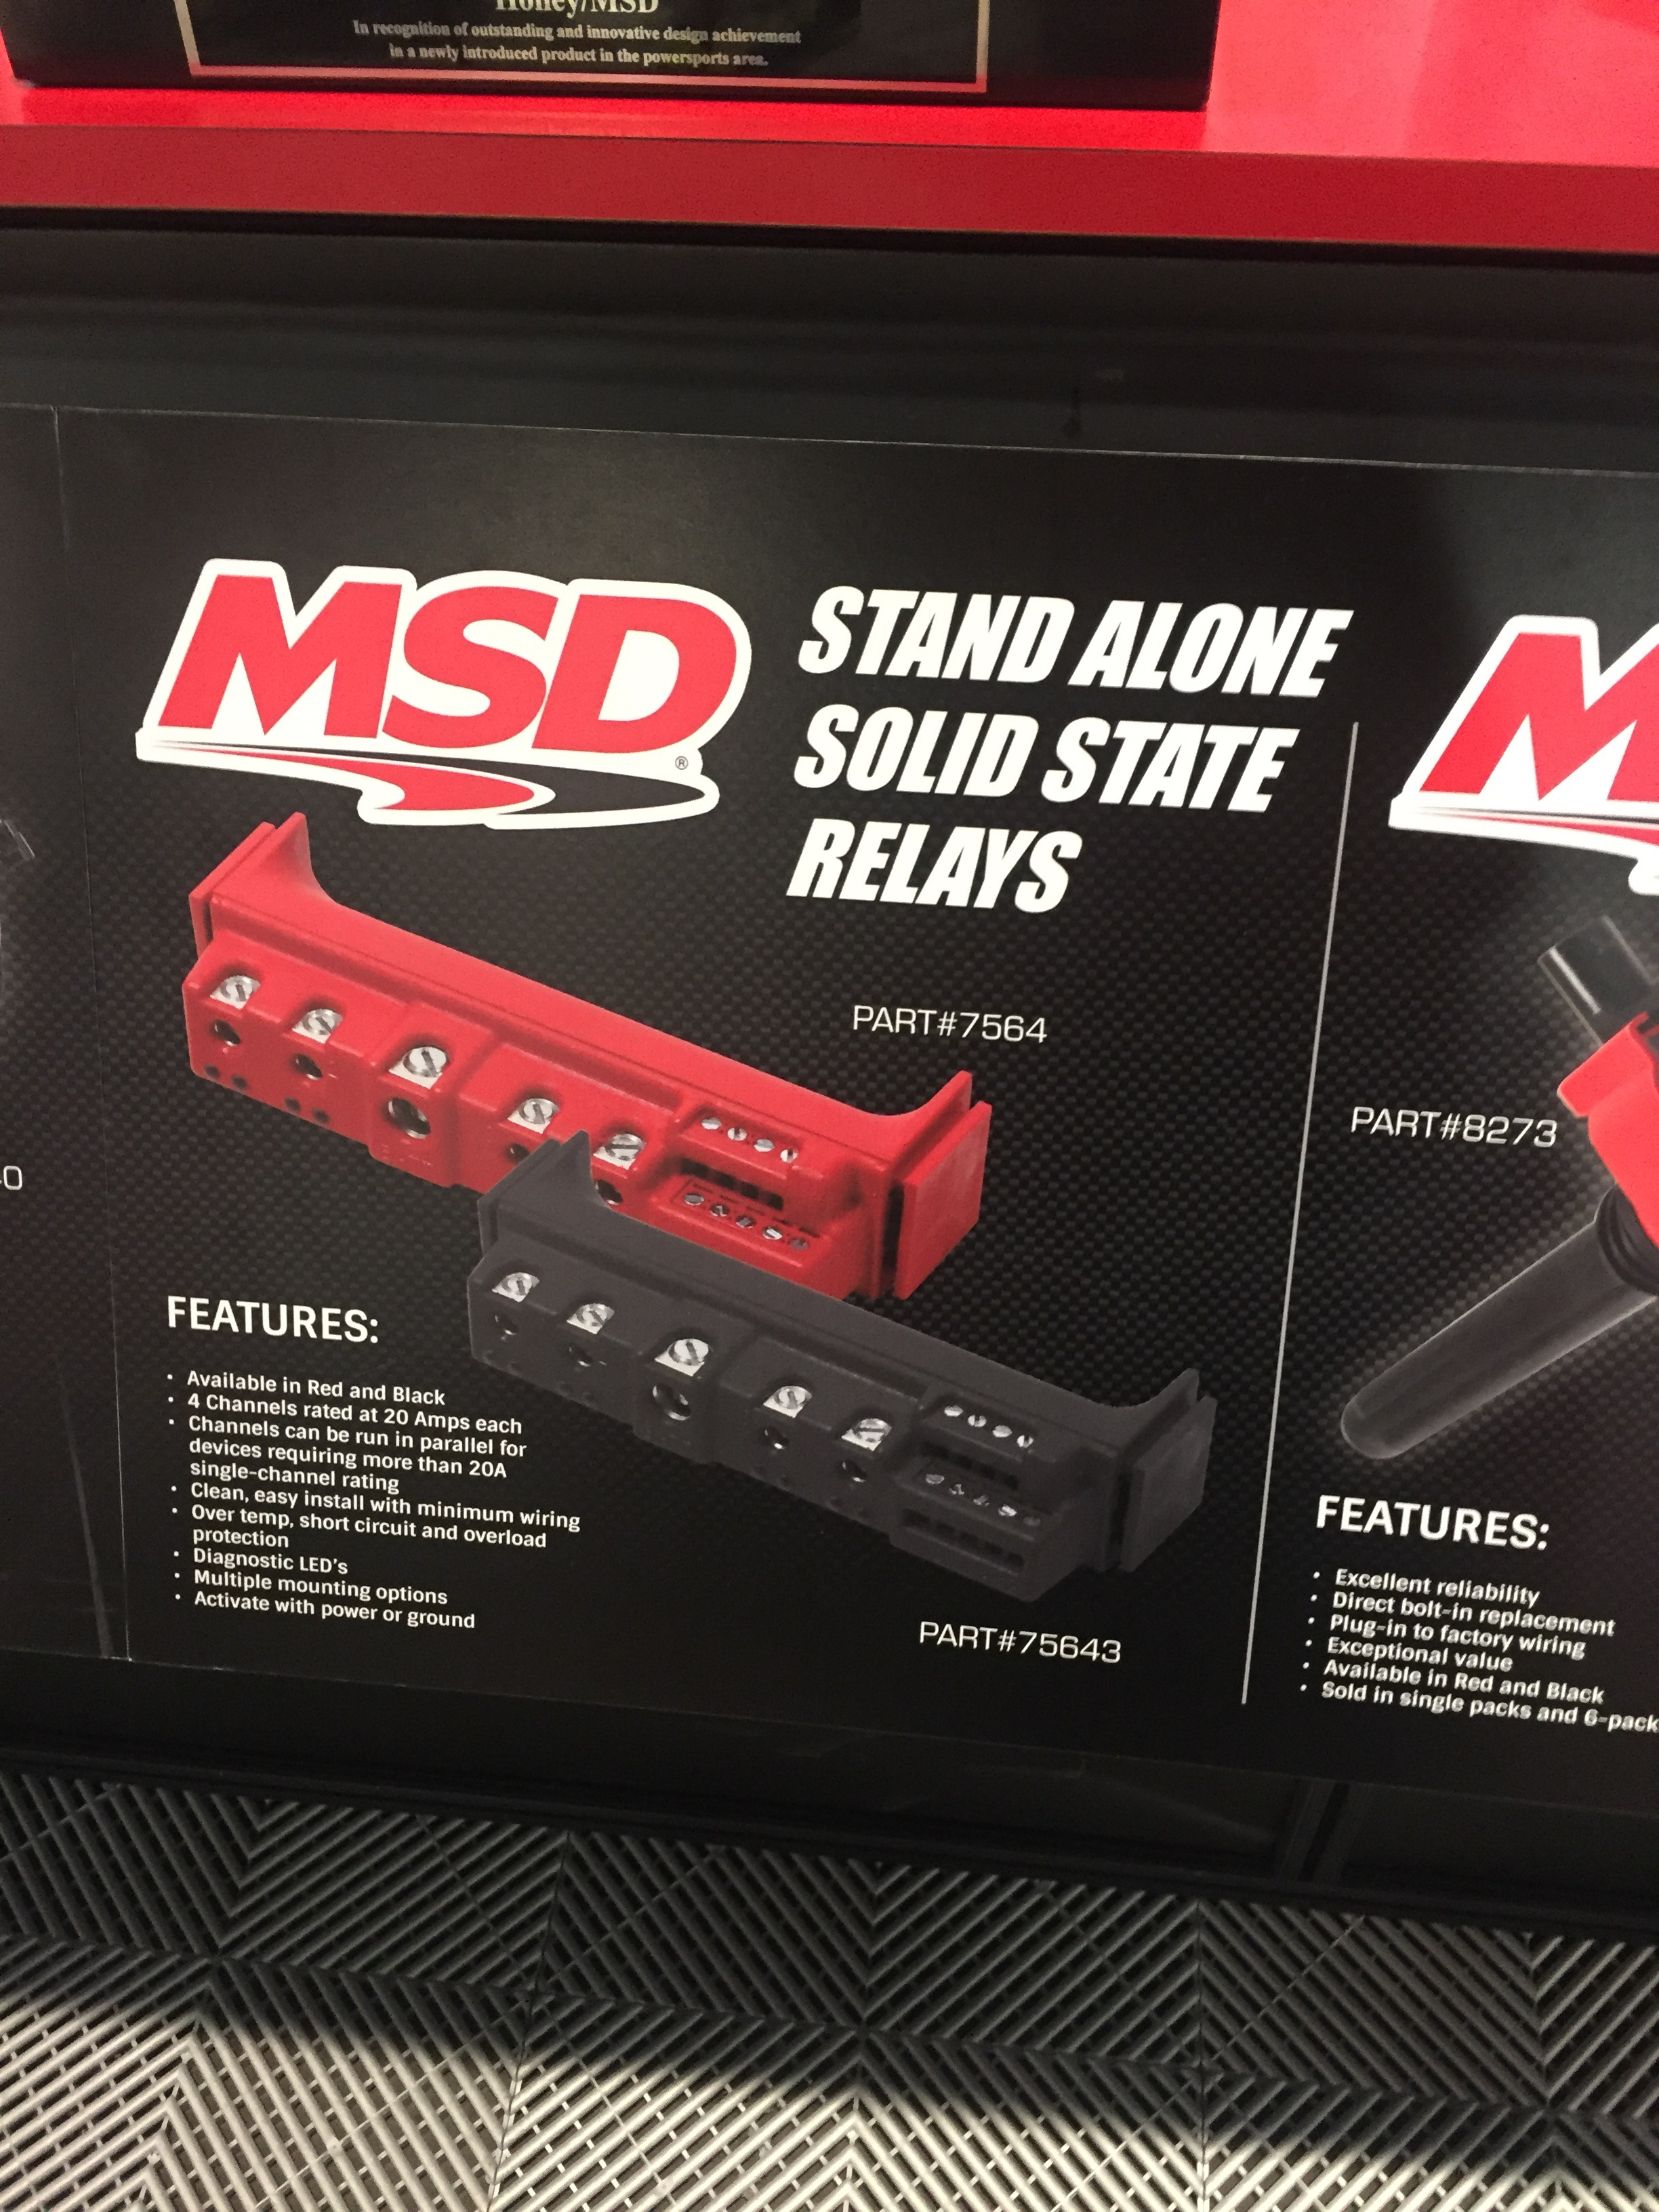 SEMA 2017 Coverage: More New Goodness From MSD – The Award-Winning Stand-Alone Solid State Relay